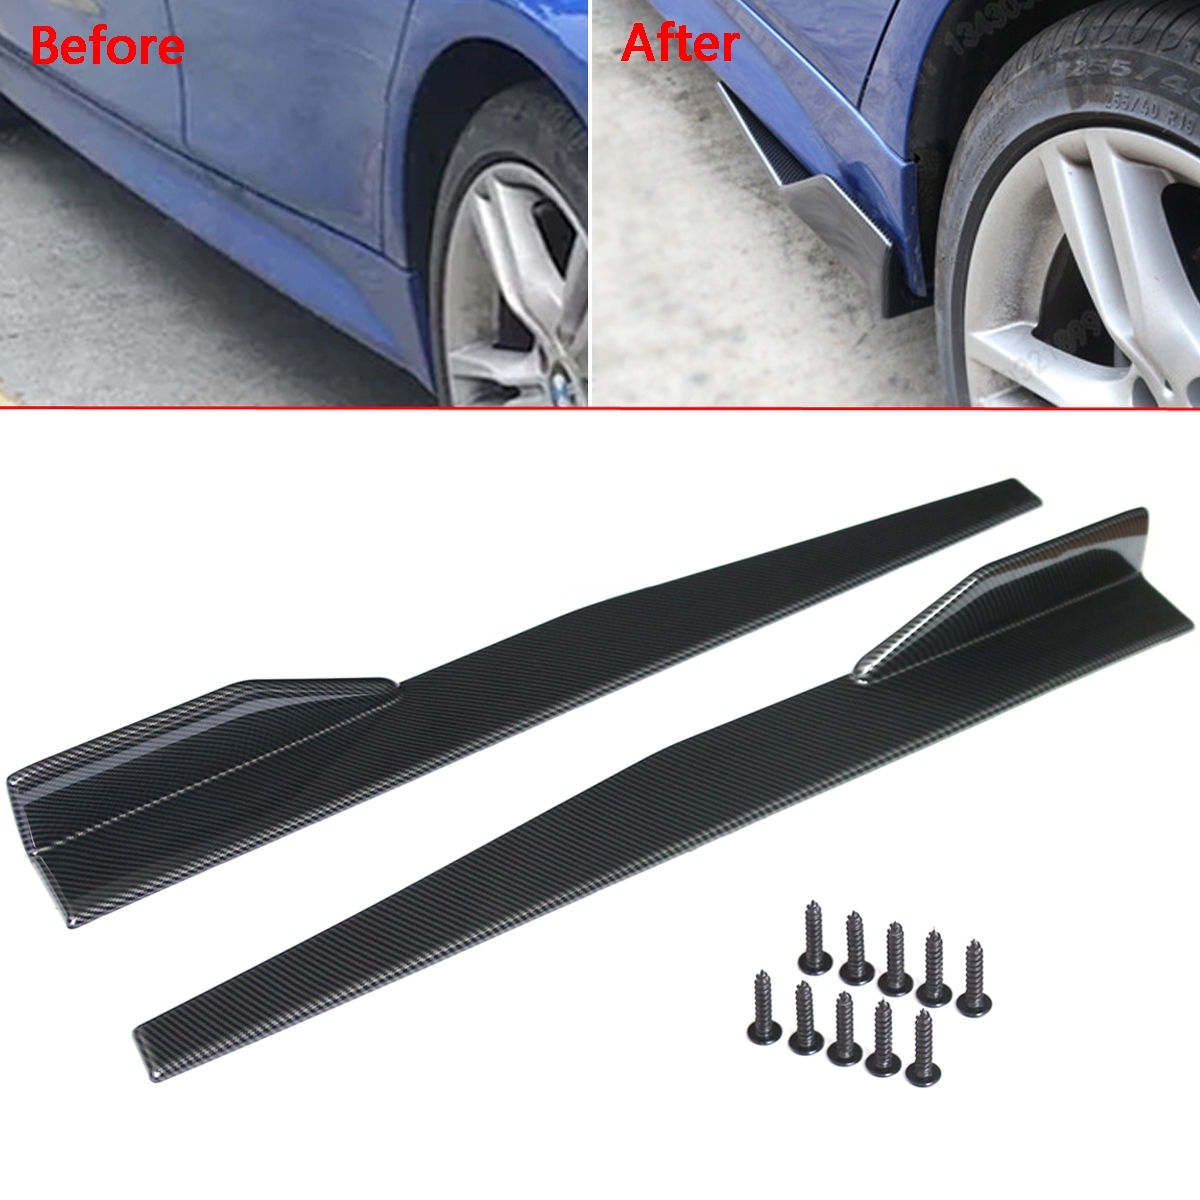 Pair Carbon Fiber Modified Car Side Skirt Rocker Splitters Diffuser Winglet Wings Bumper Protector 86CM Universal